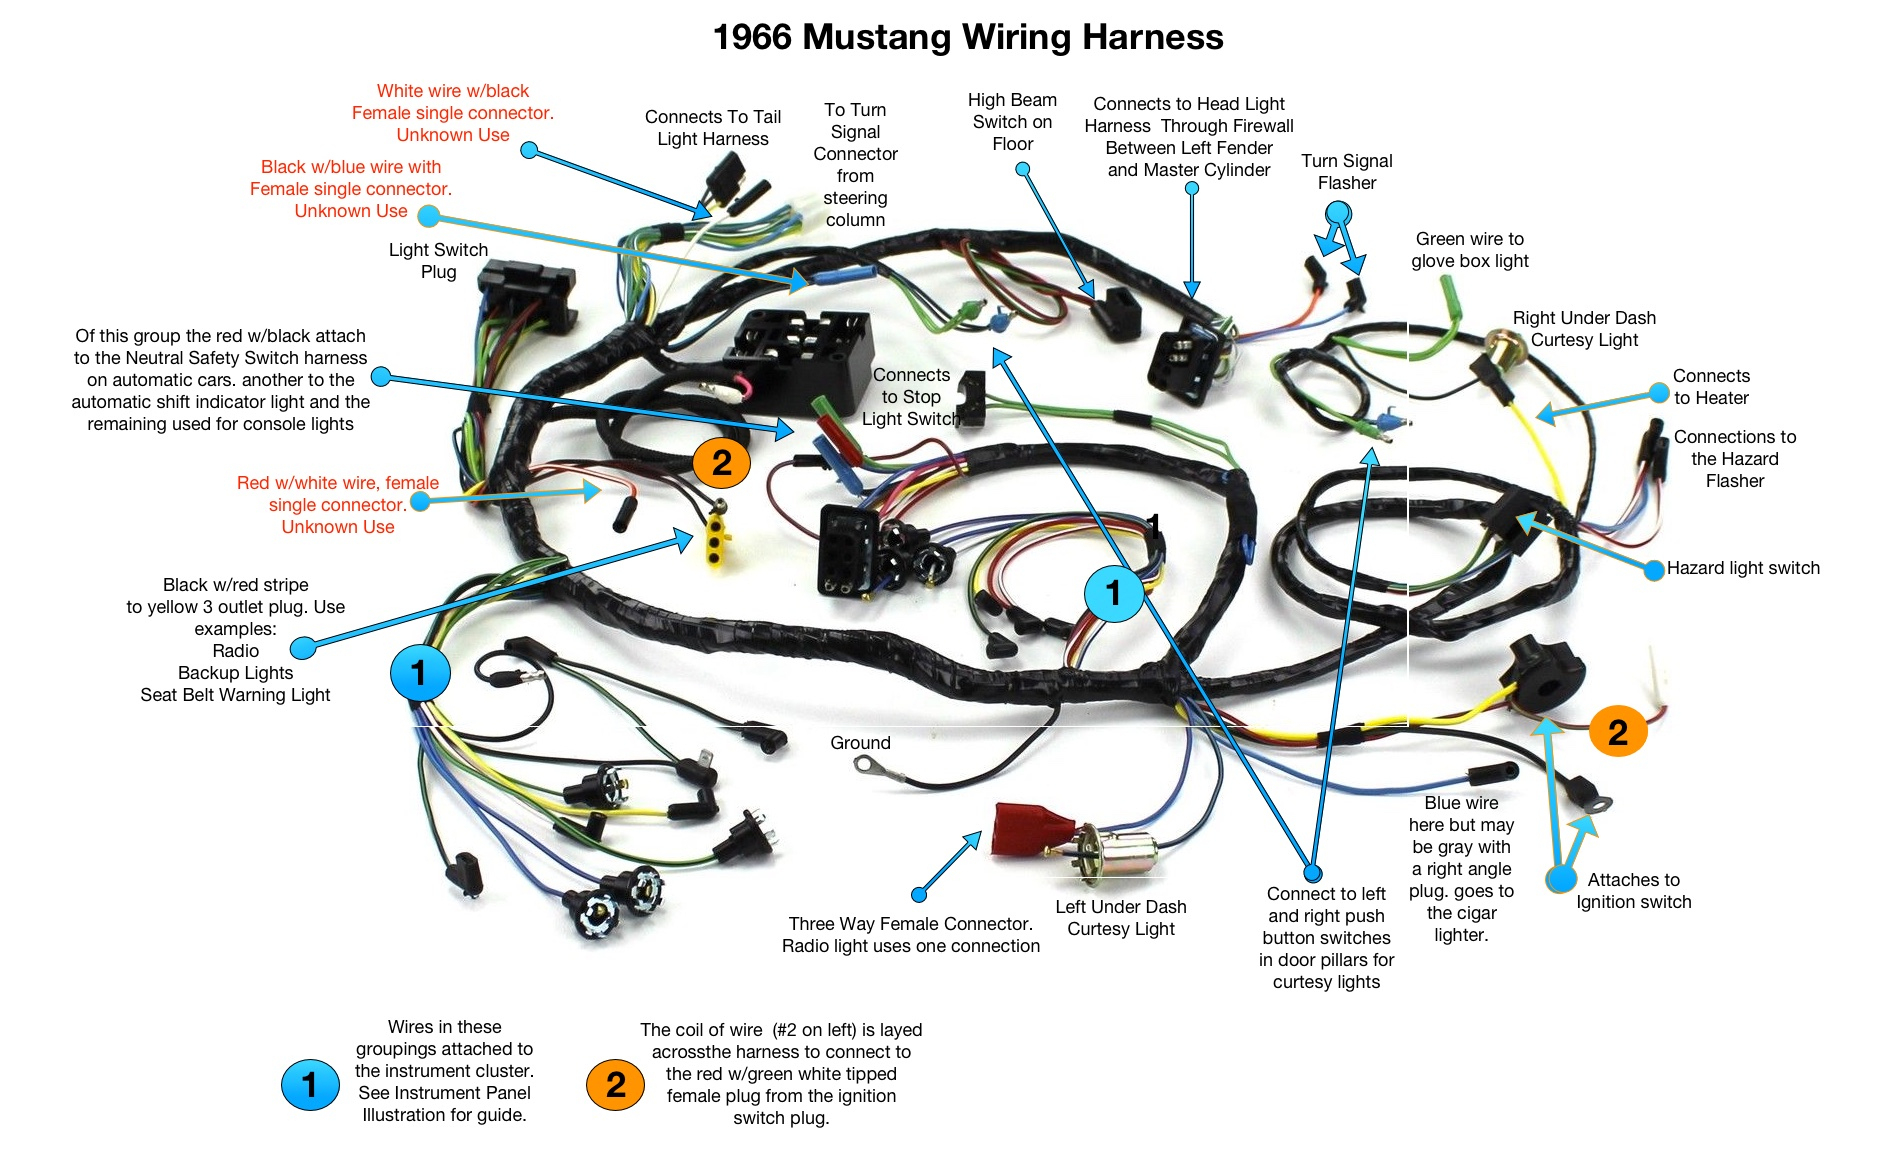 1989 Ford Mustang Wiring Harness | Wiring Diagram - Mustang Wiring Harness Diagram